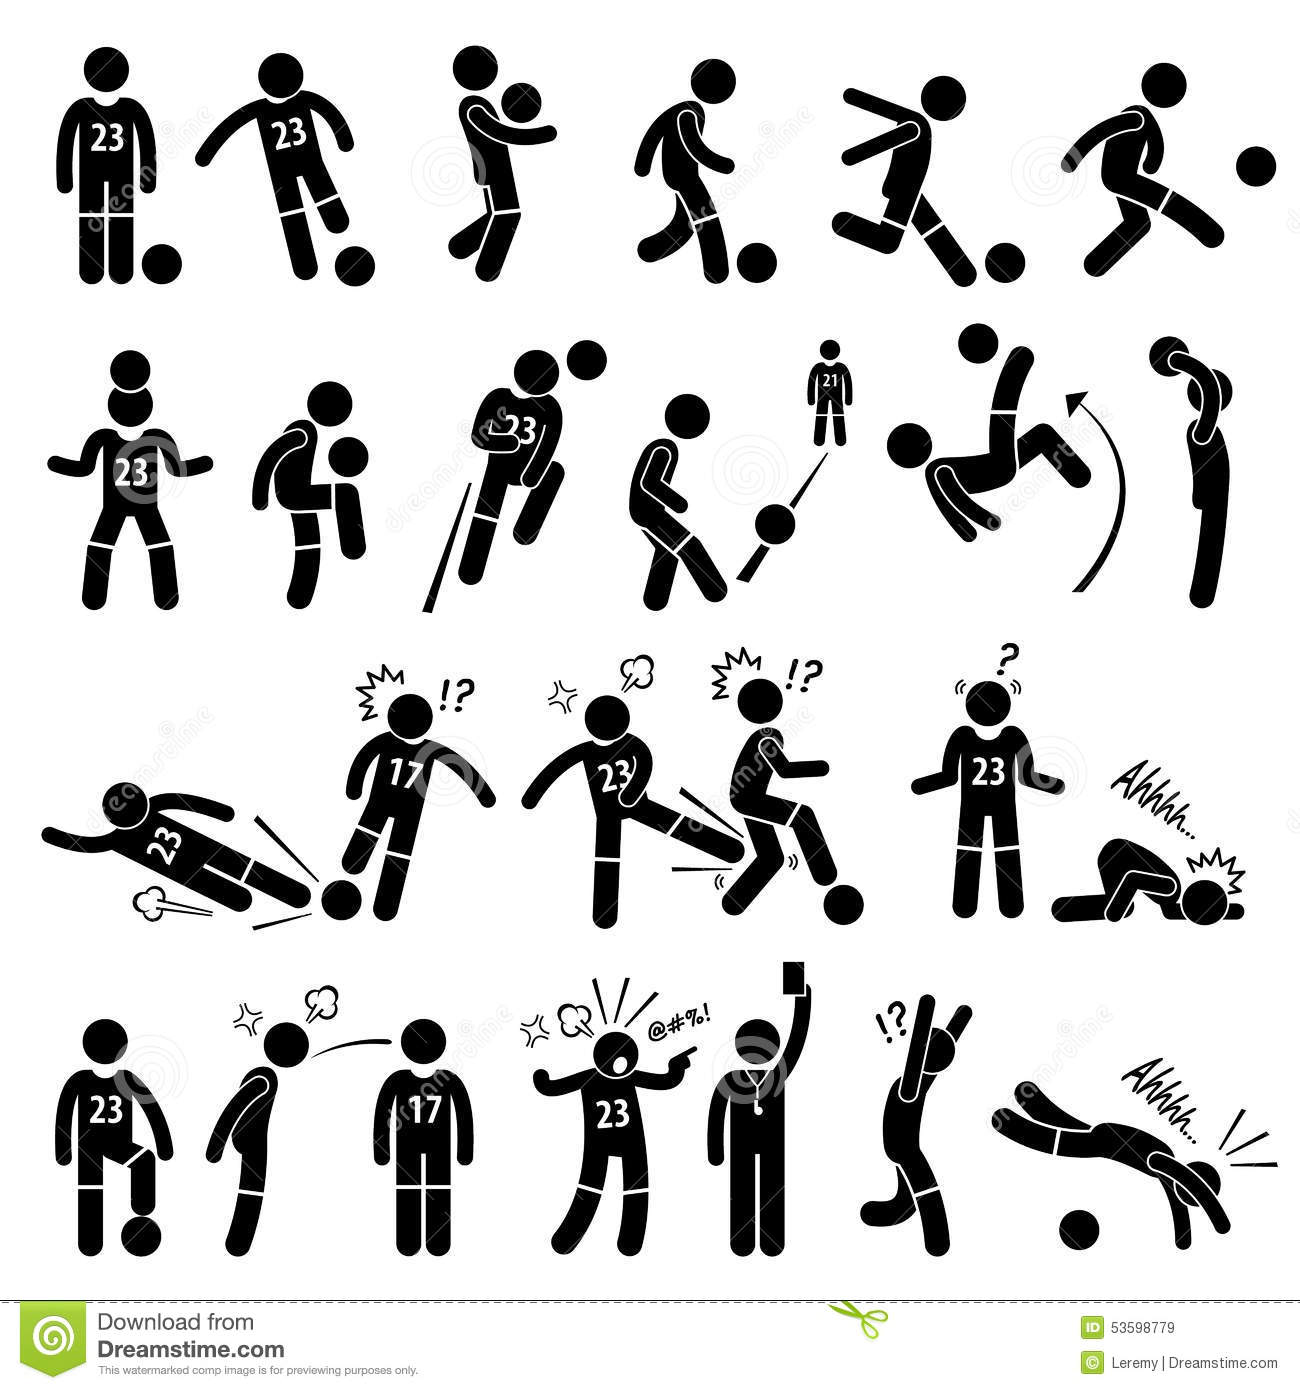 Illustration Stock Footballer Actions Poses Cliparts De Footballeur Du Football Image53598779 moreover Tupian additionally 01 as well 990 as well Tired Clipart. on stick figure